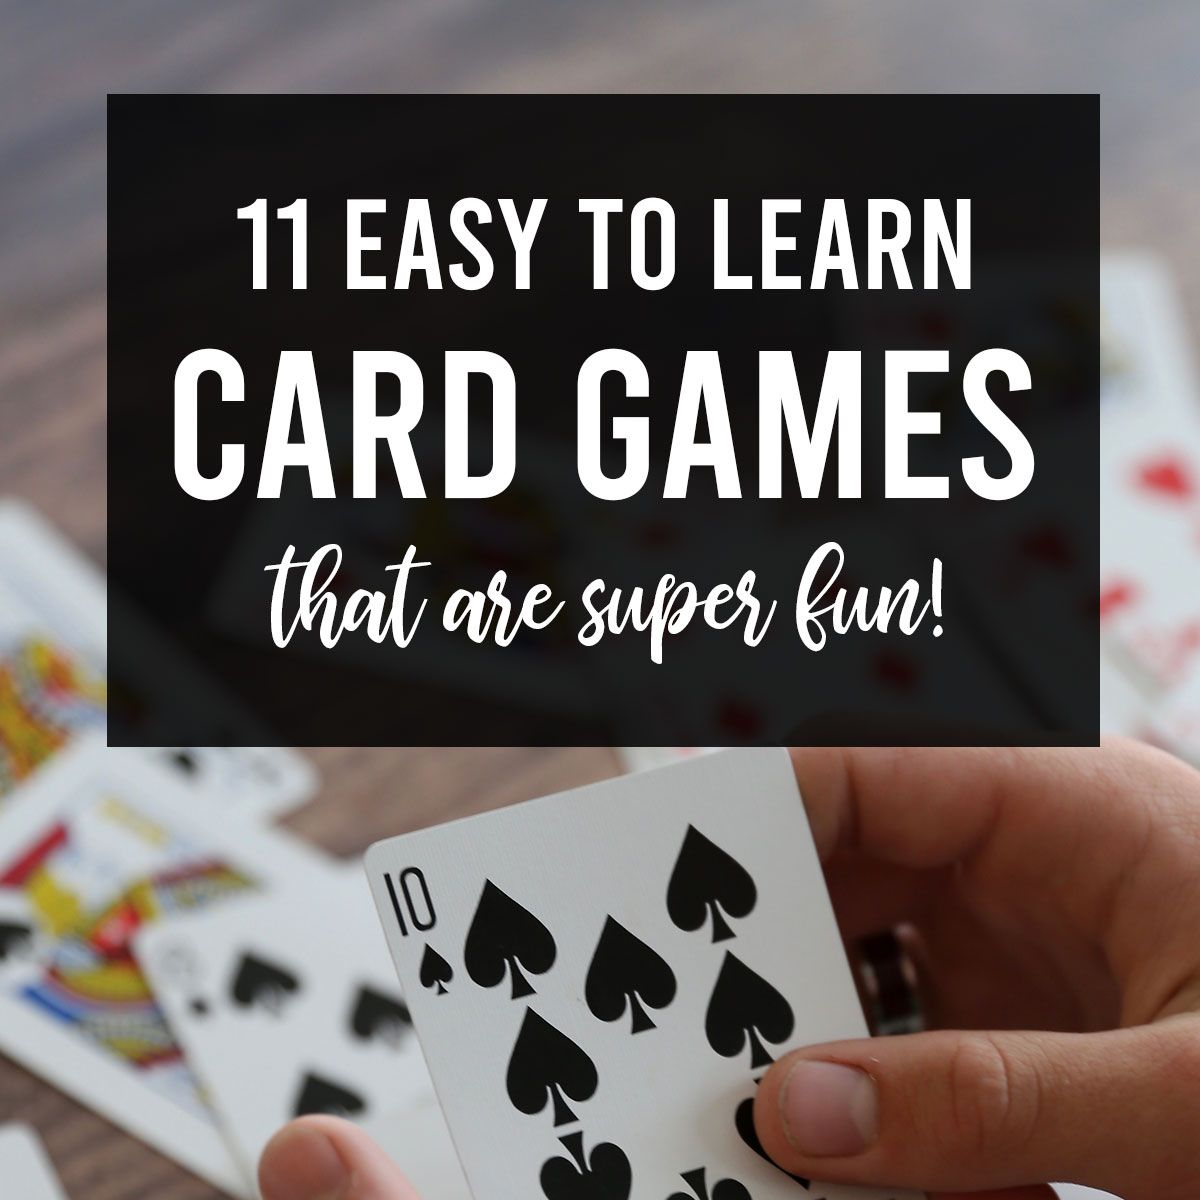 11 Fun Easy Cards Games For Kids And Adults Card Games For